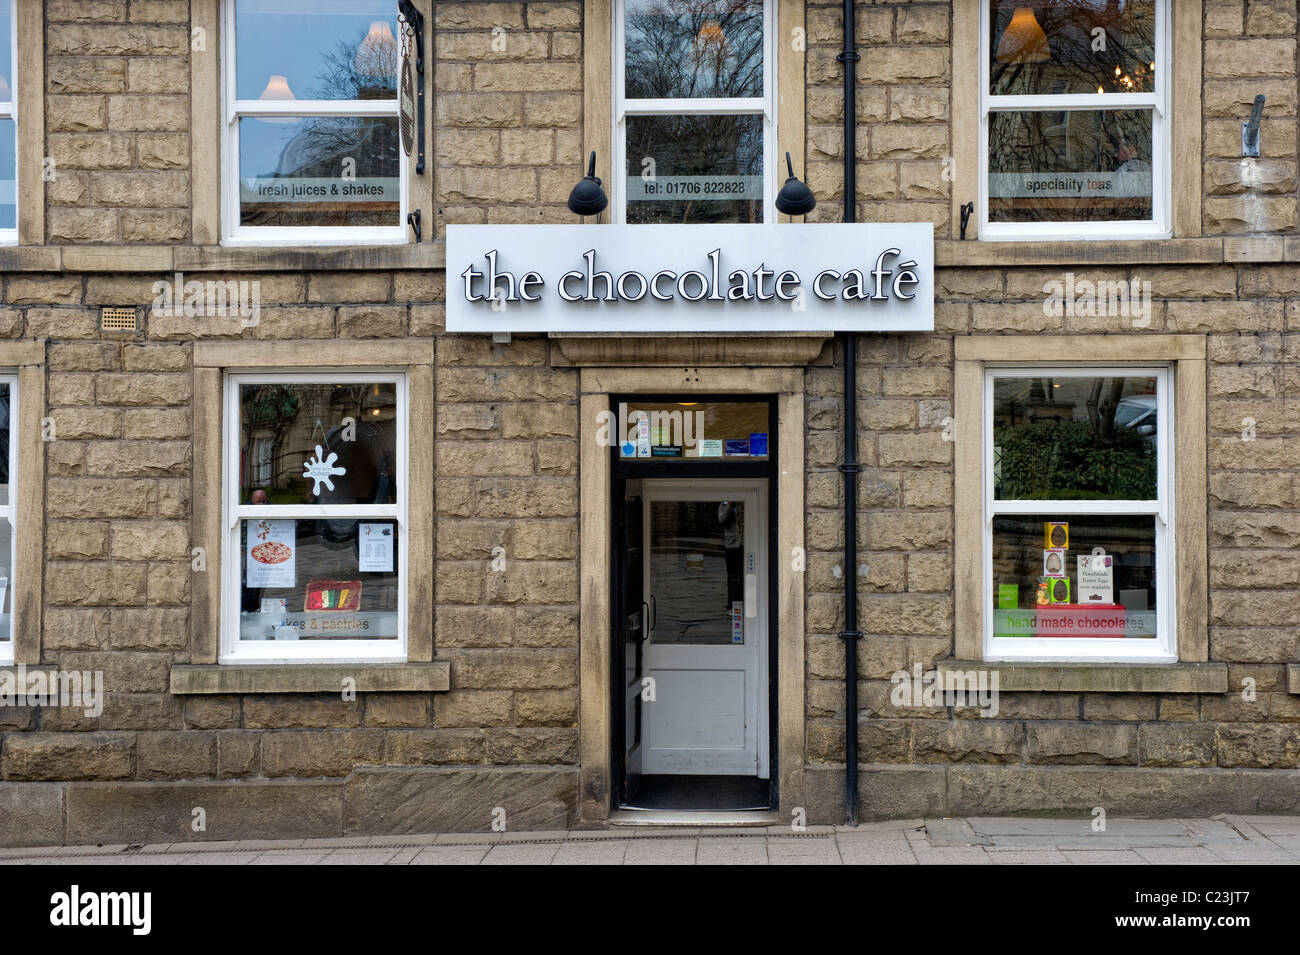 The World Famous Chocolate Cafe In The Town Of Ramsbottom In